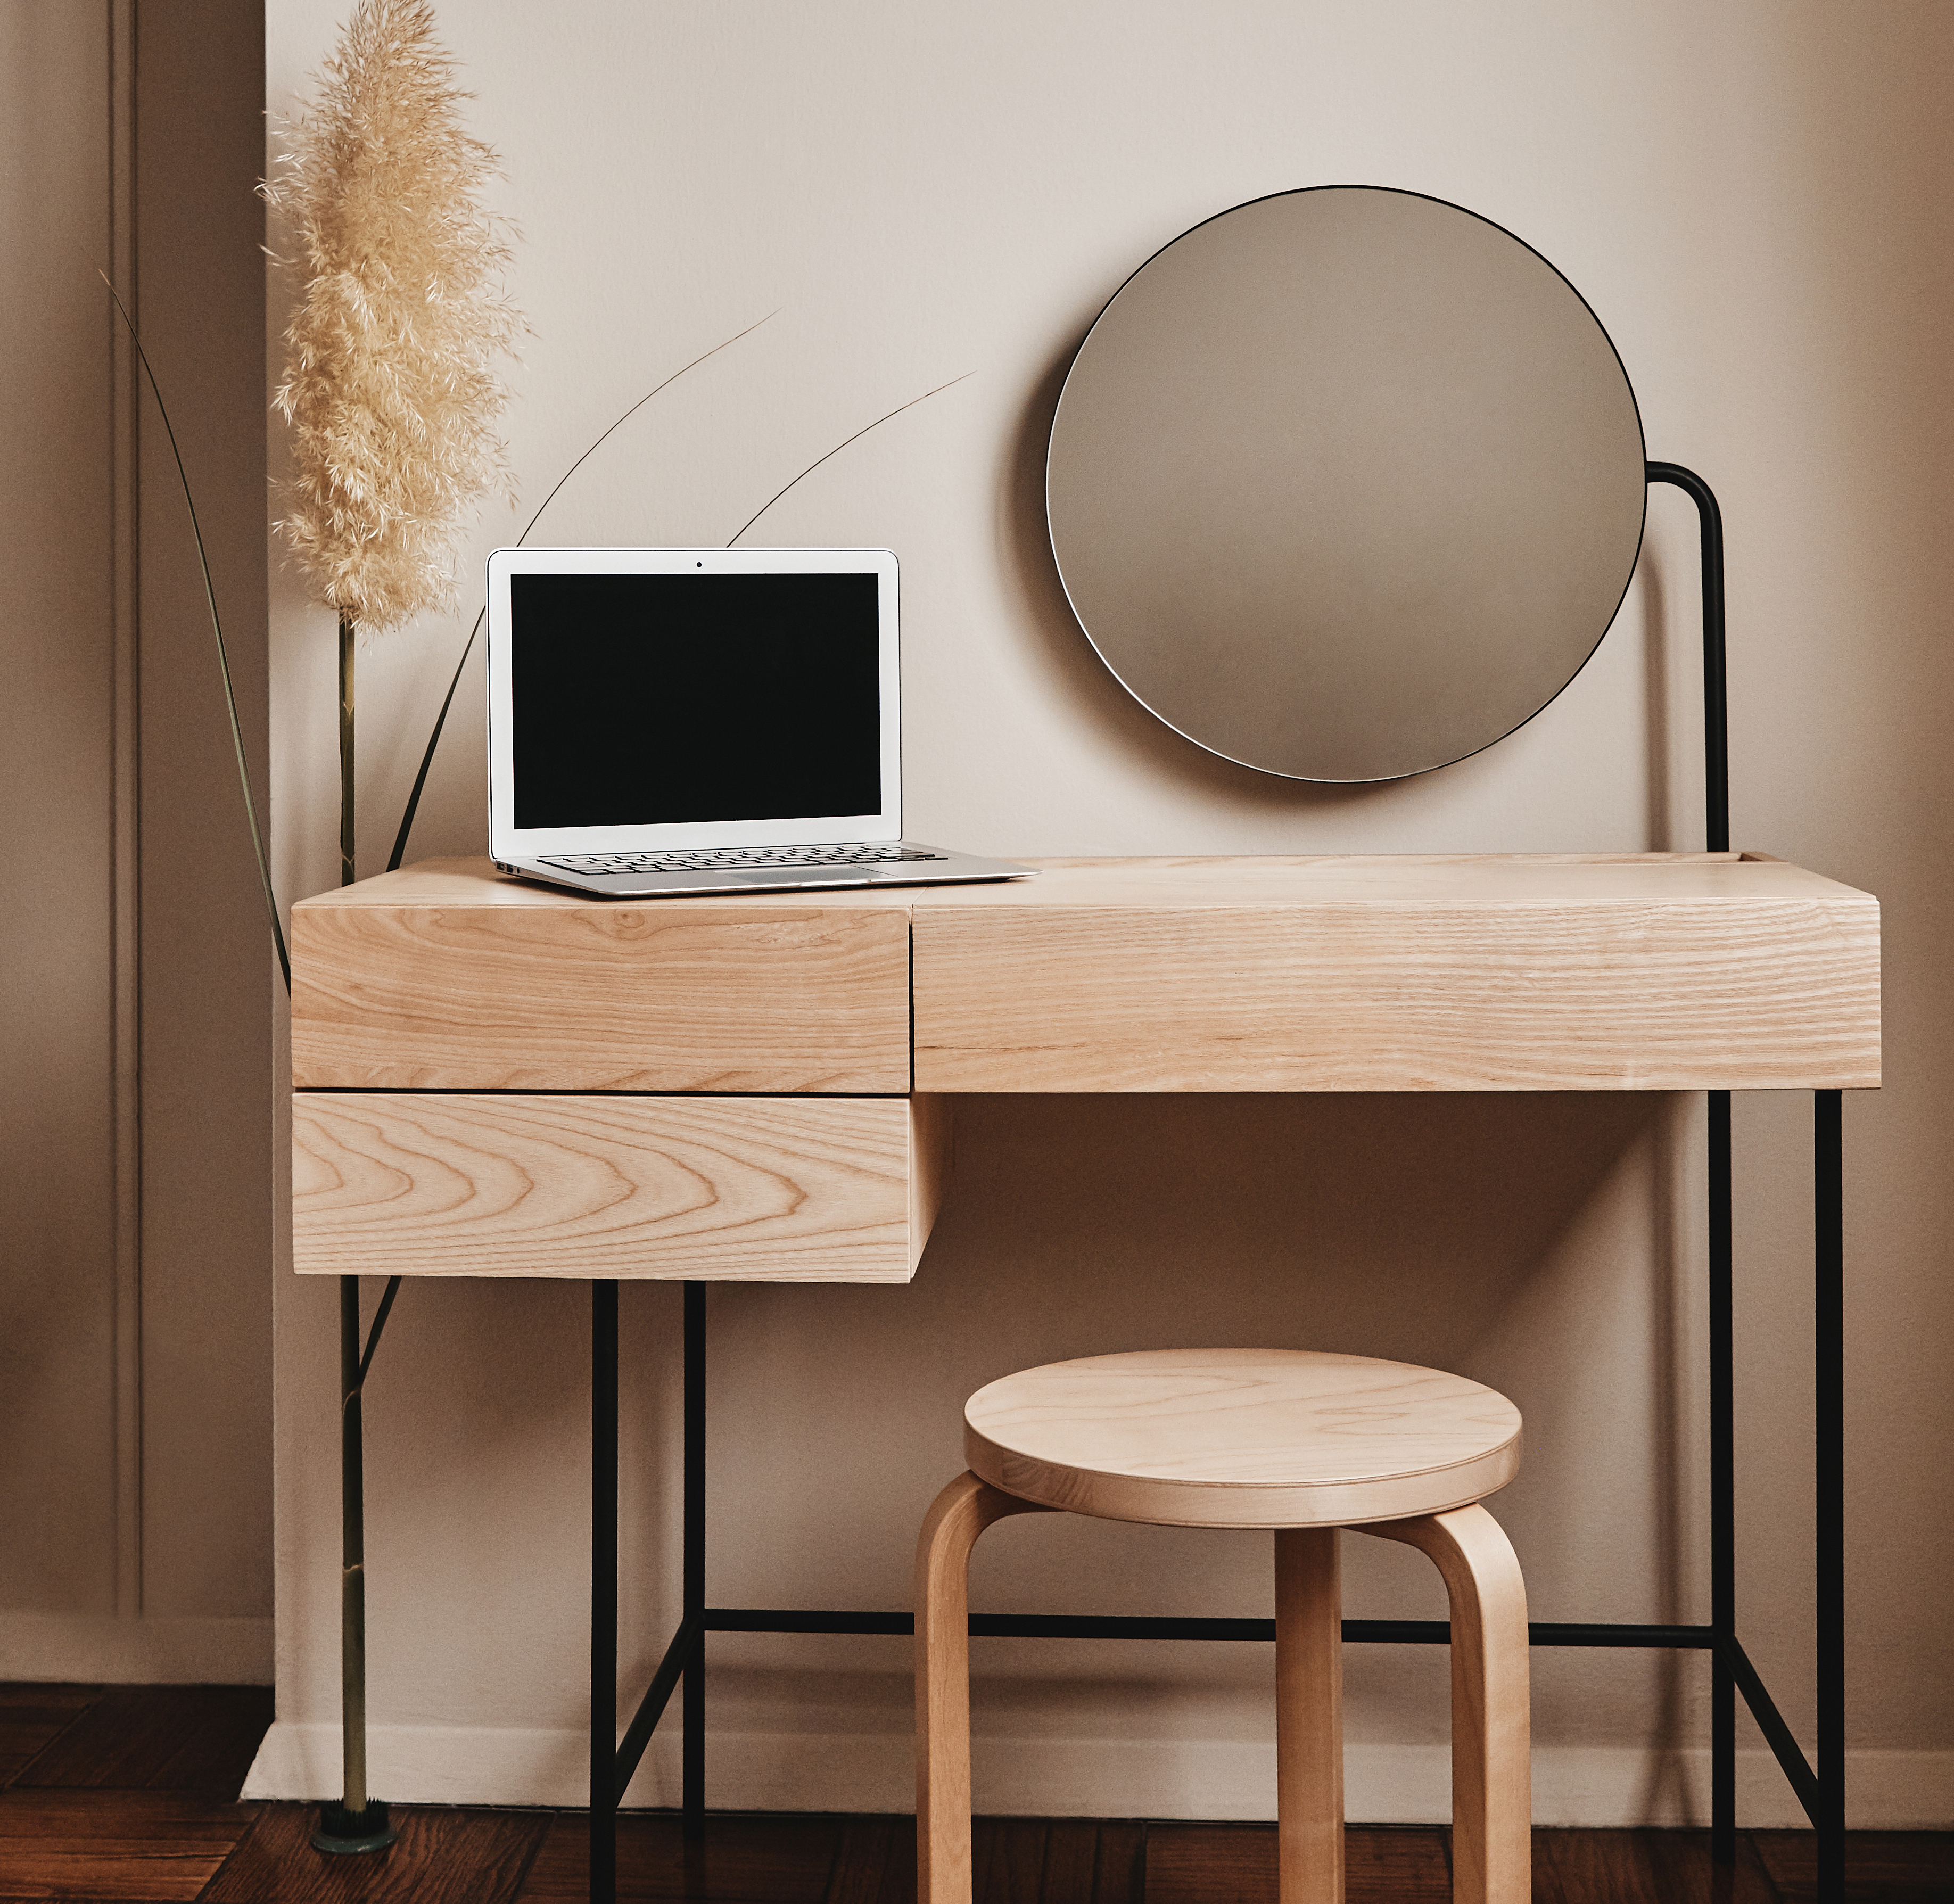 This Minimalist-Chic Item Is a Vanity and Desk in One